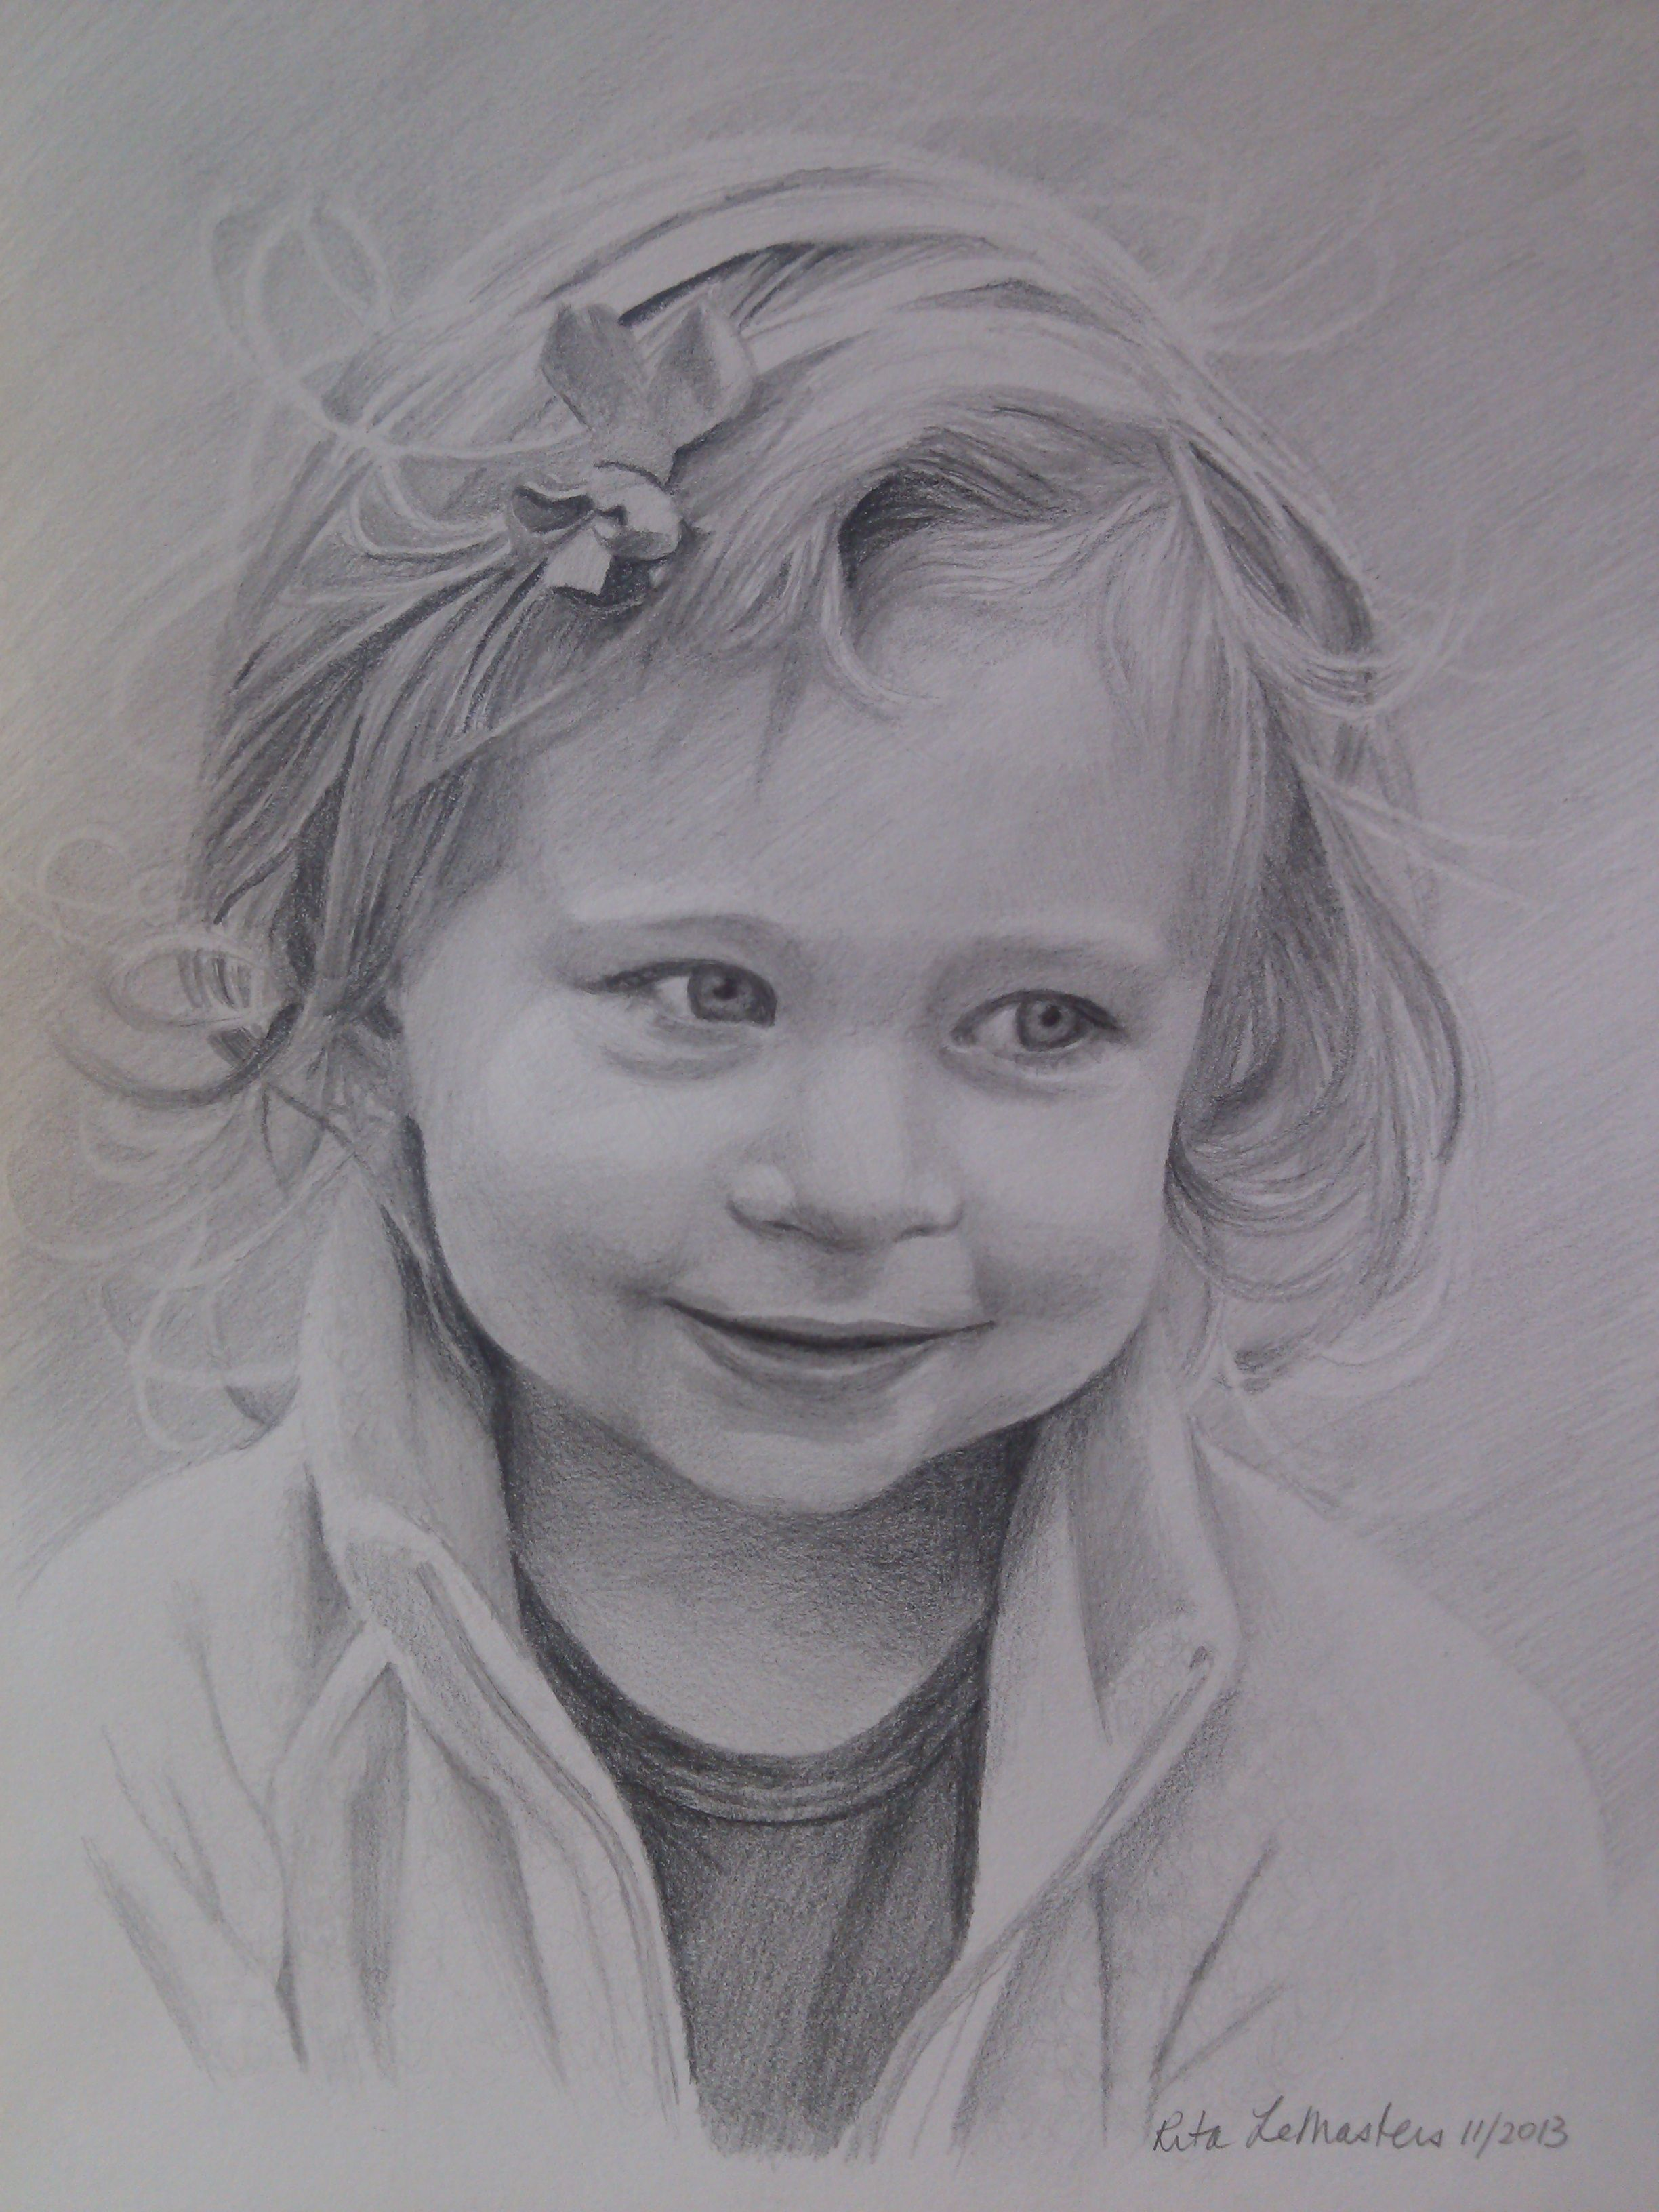 9x2 graphite portrait graphite drawings cool drawings drawing sketches child portraits